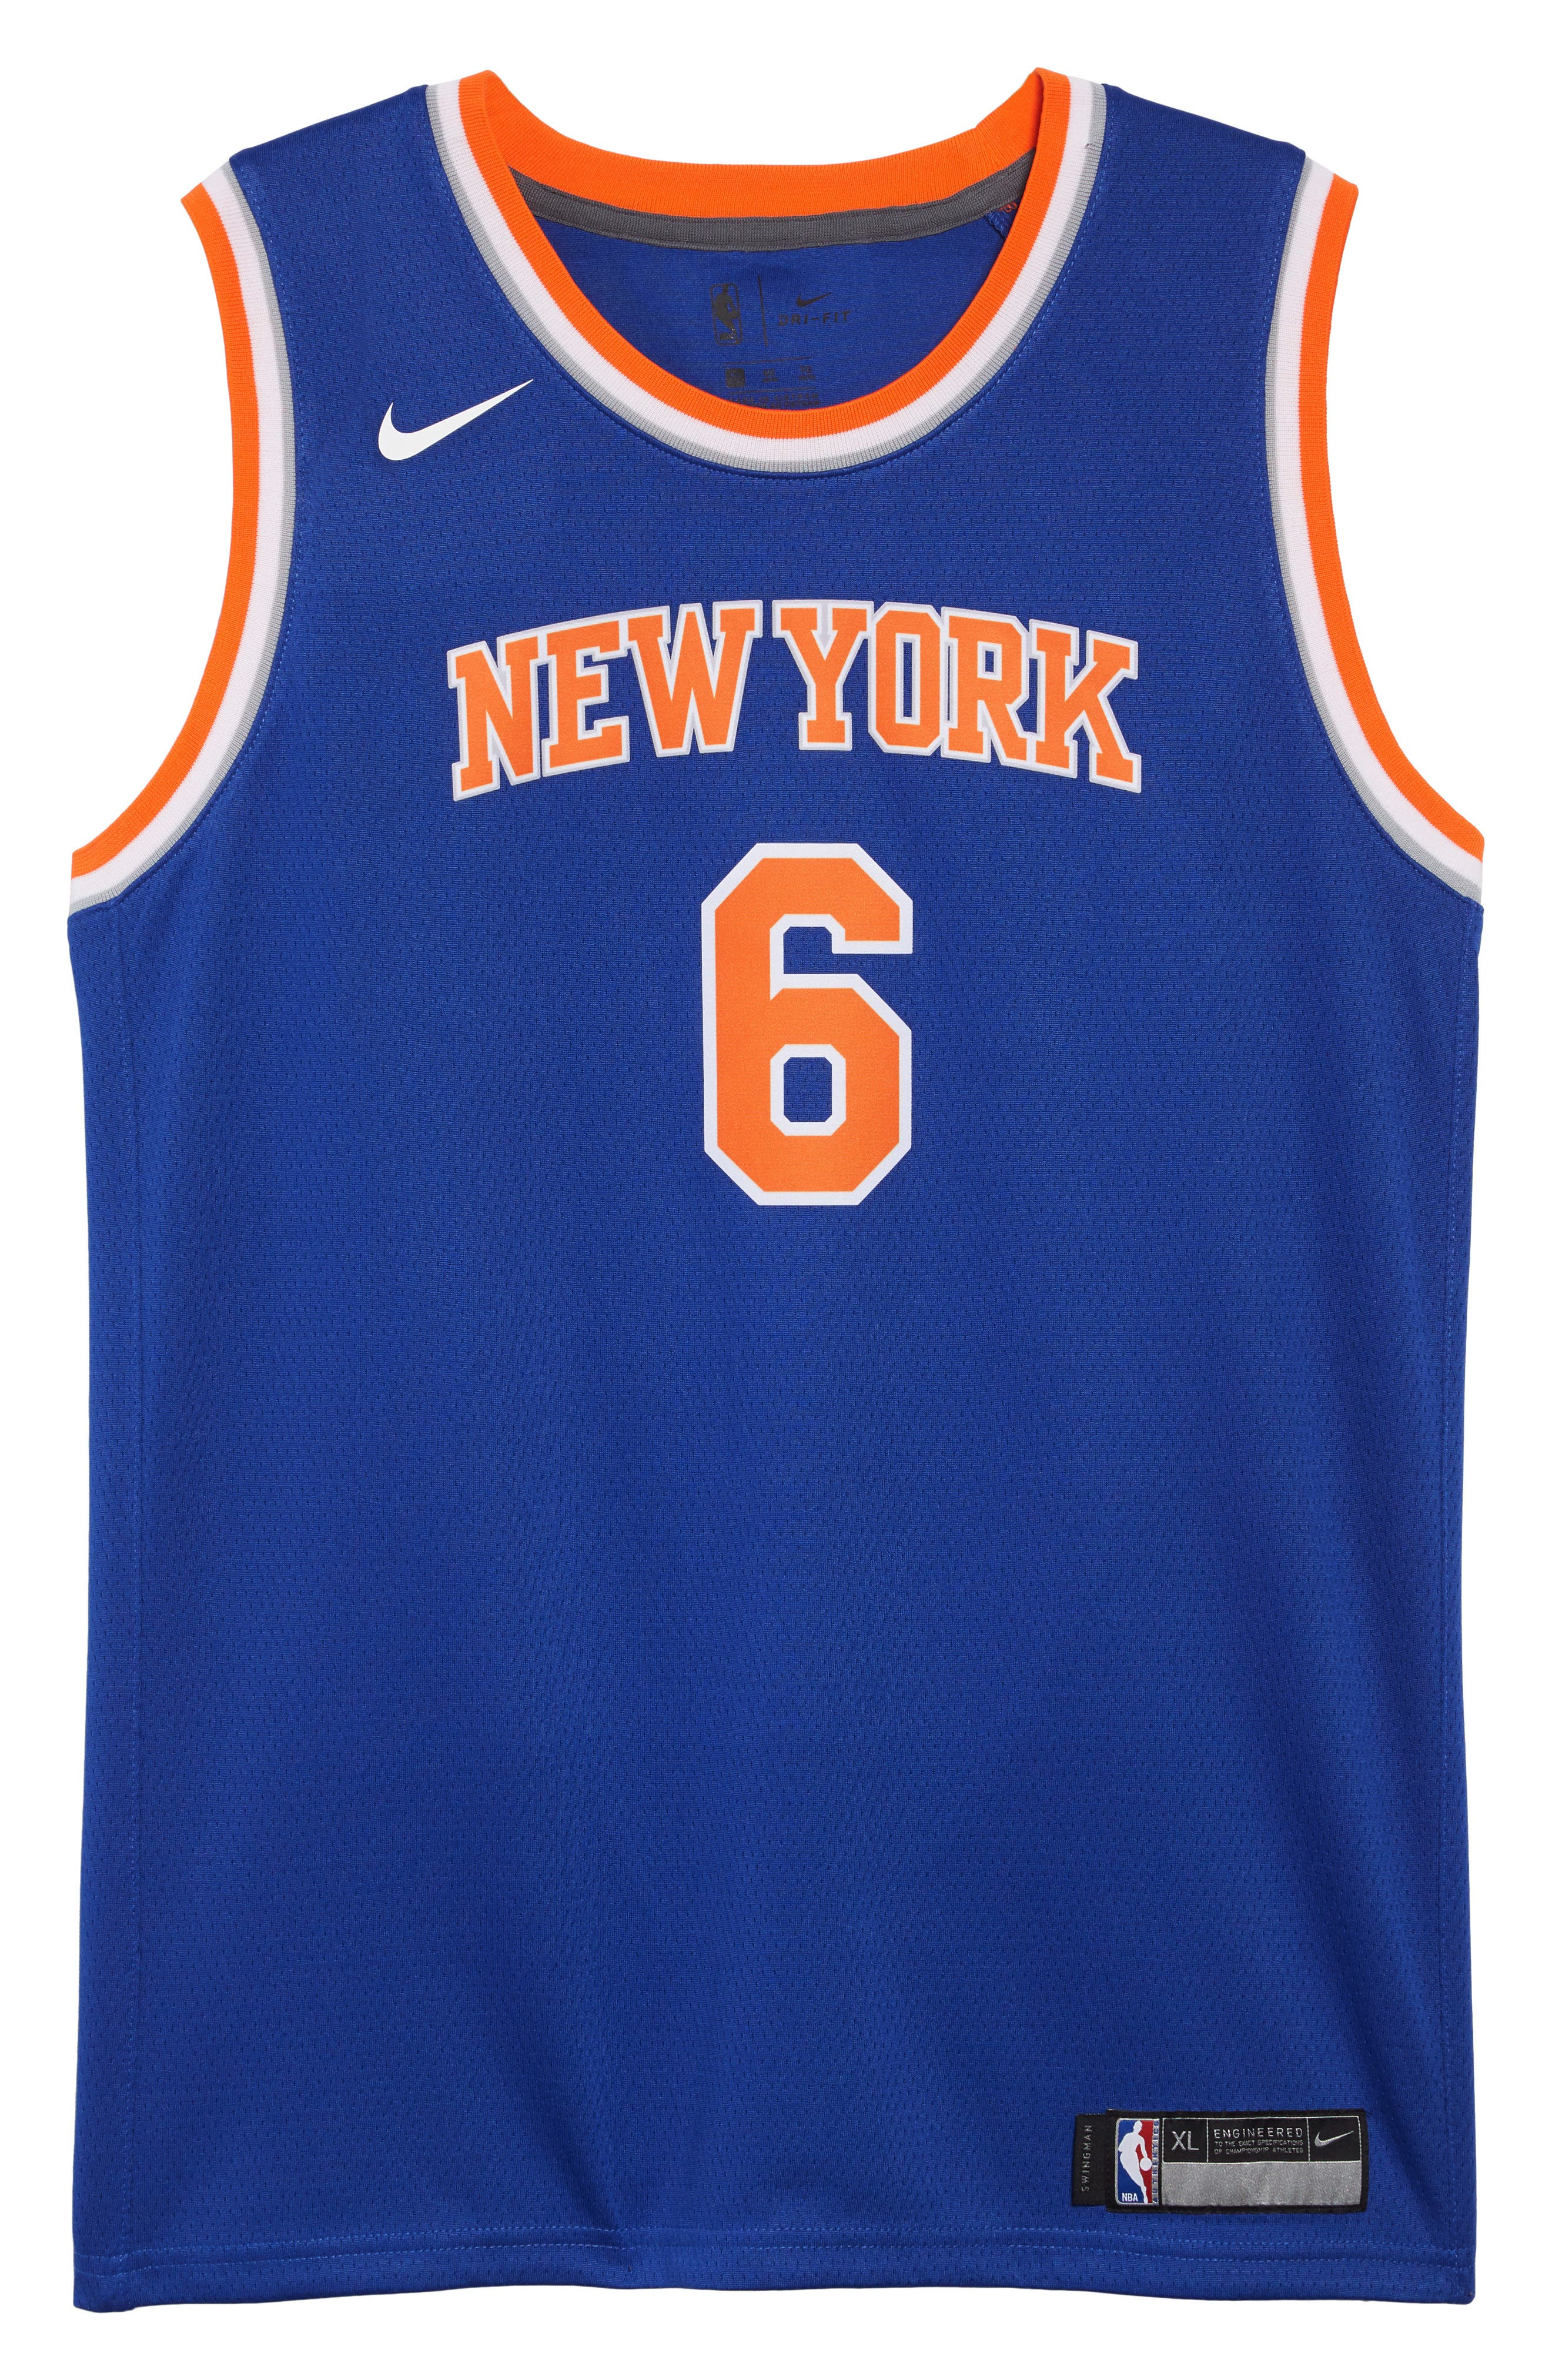 ... promo code for new york knicks kristaps porzingis basketball jersey  main color rush blue 9a1f6 6a1cd d39e0231c